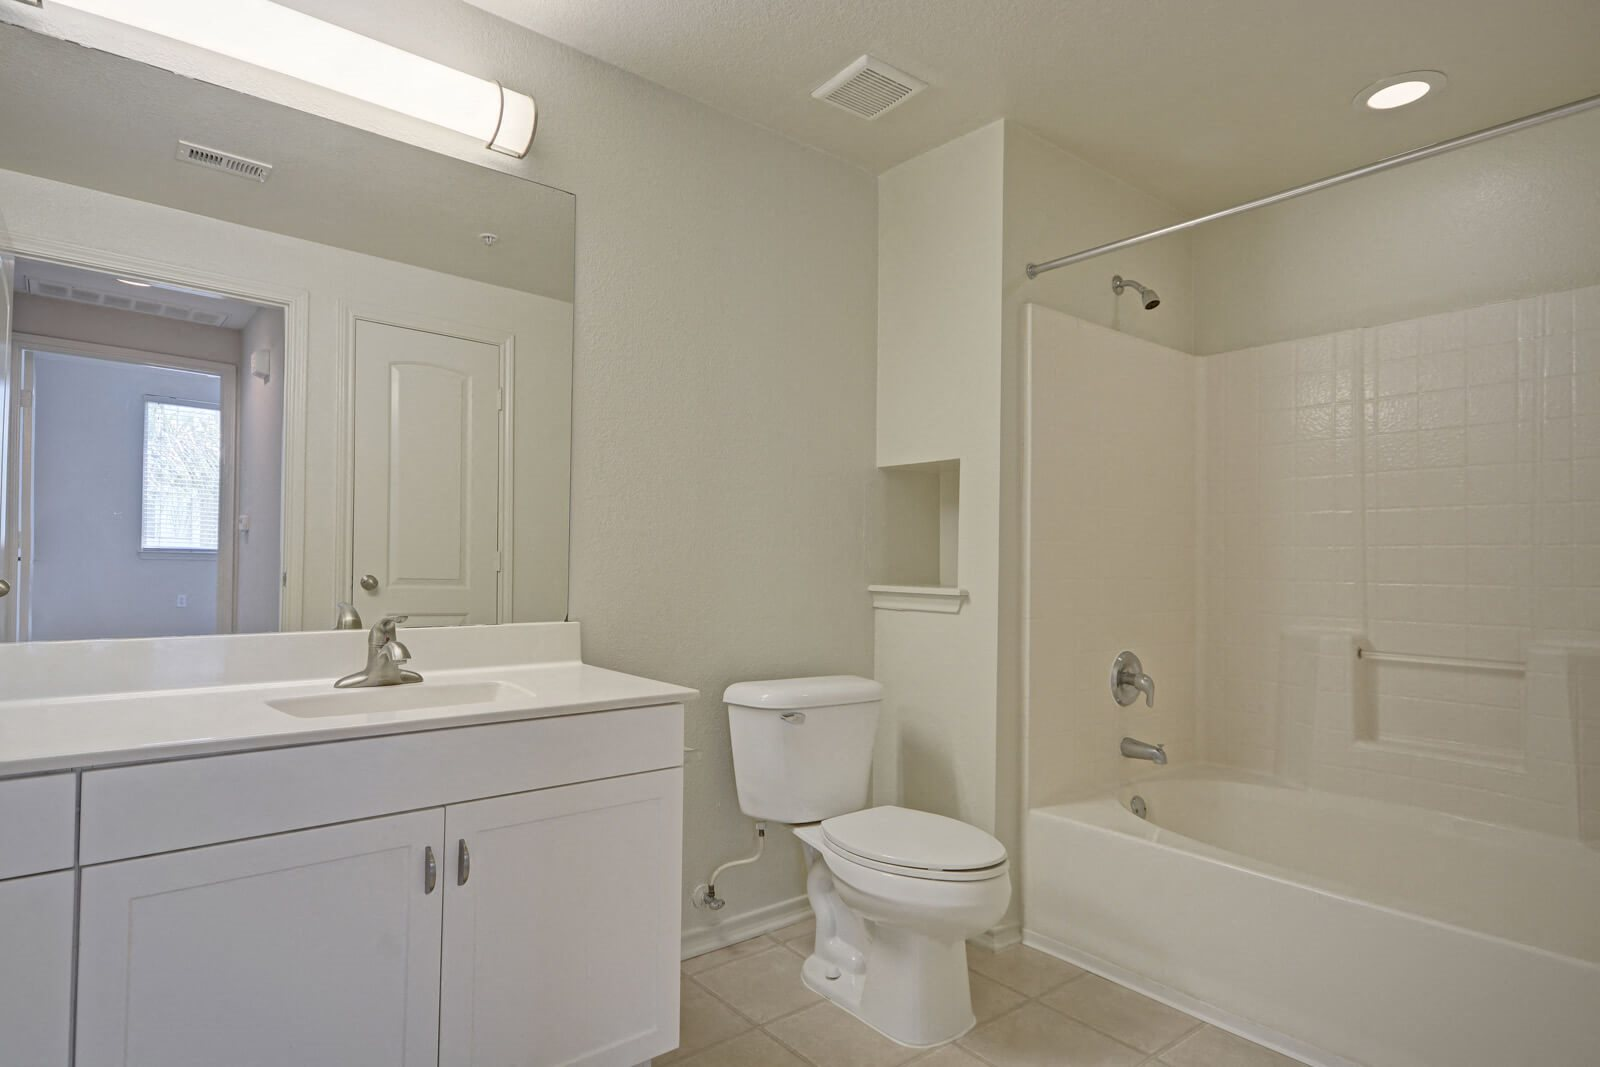 Modern Bathrooms with Ample Storage Space at Windsor at Main Place, 1235 West Town and Country Road, CA